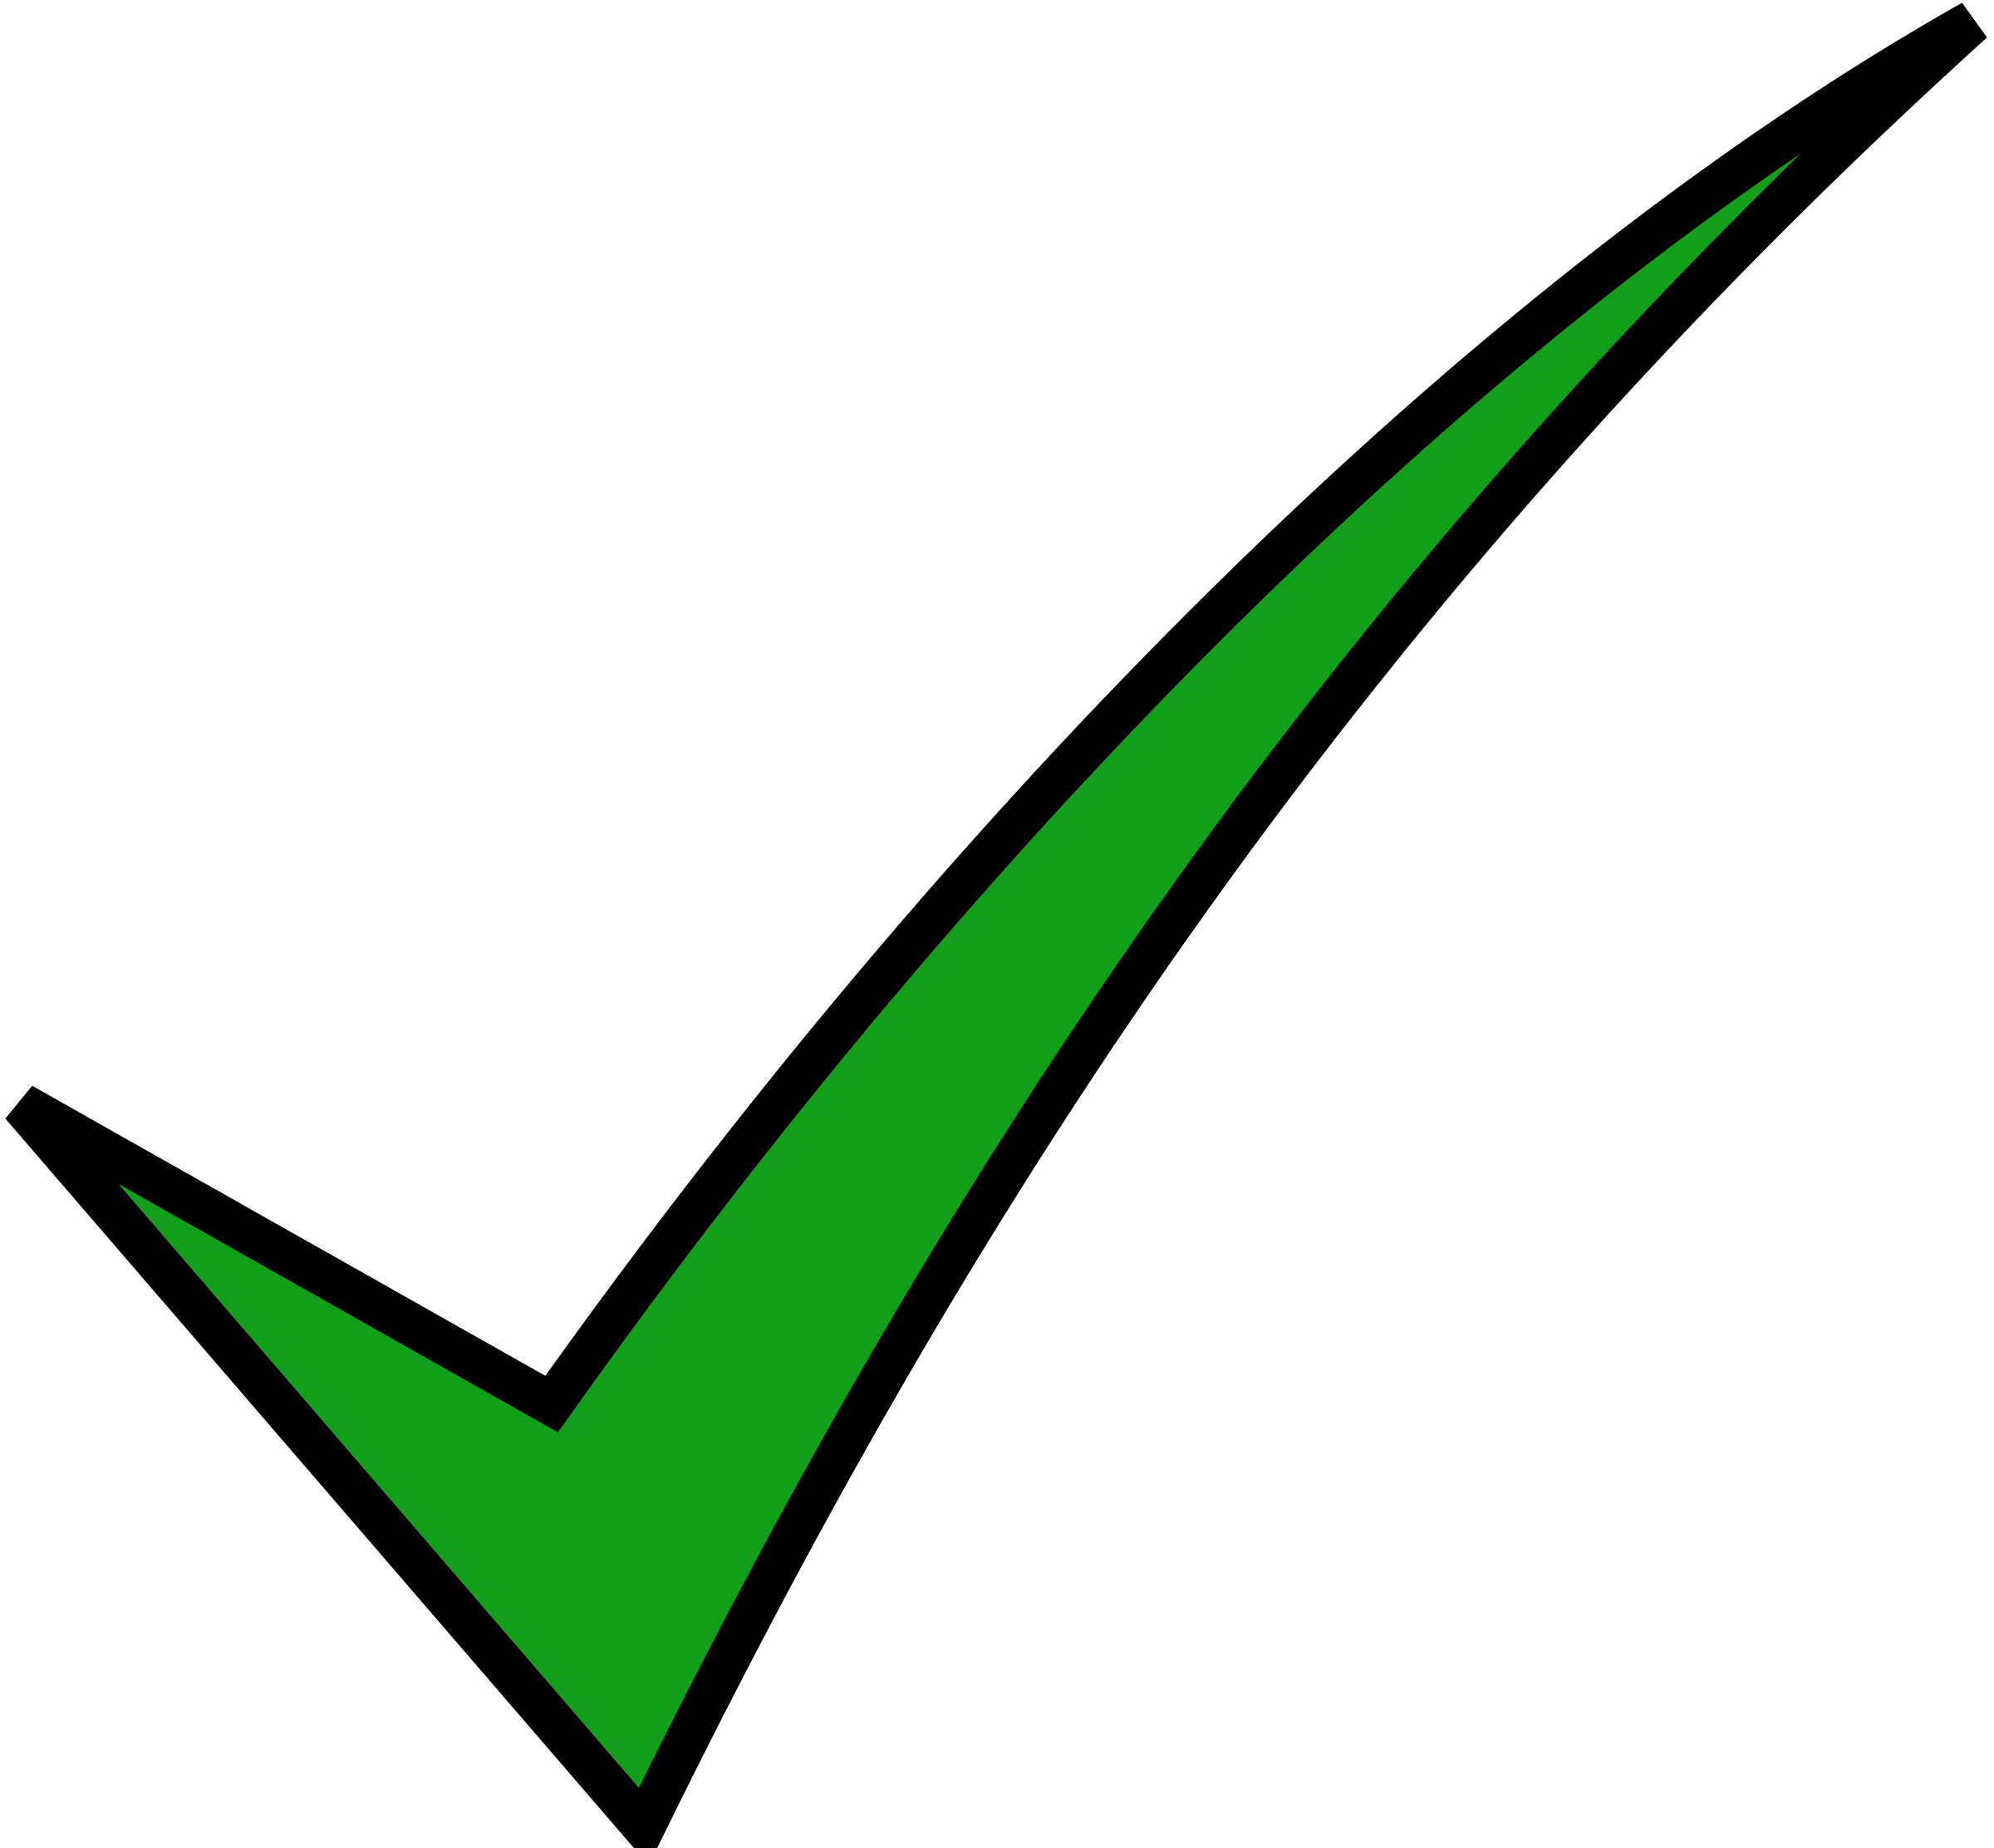 Check Symbol Png - ClipArt Best